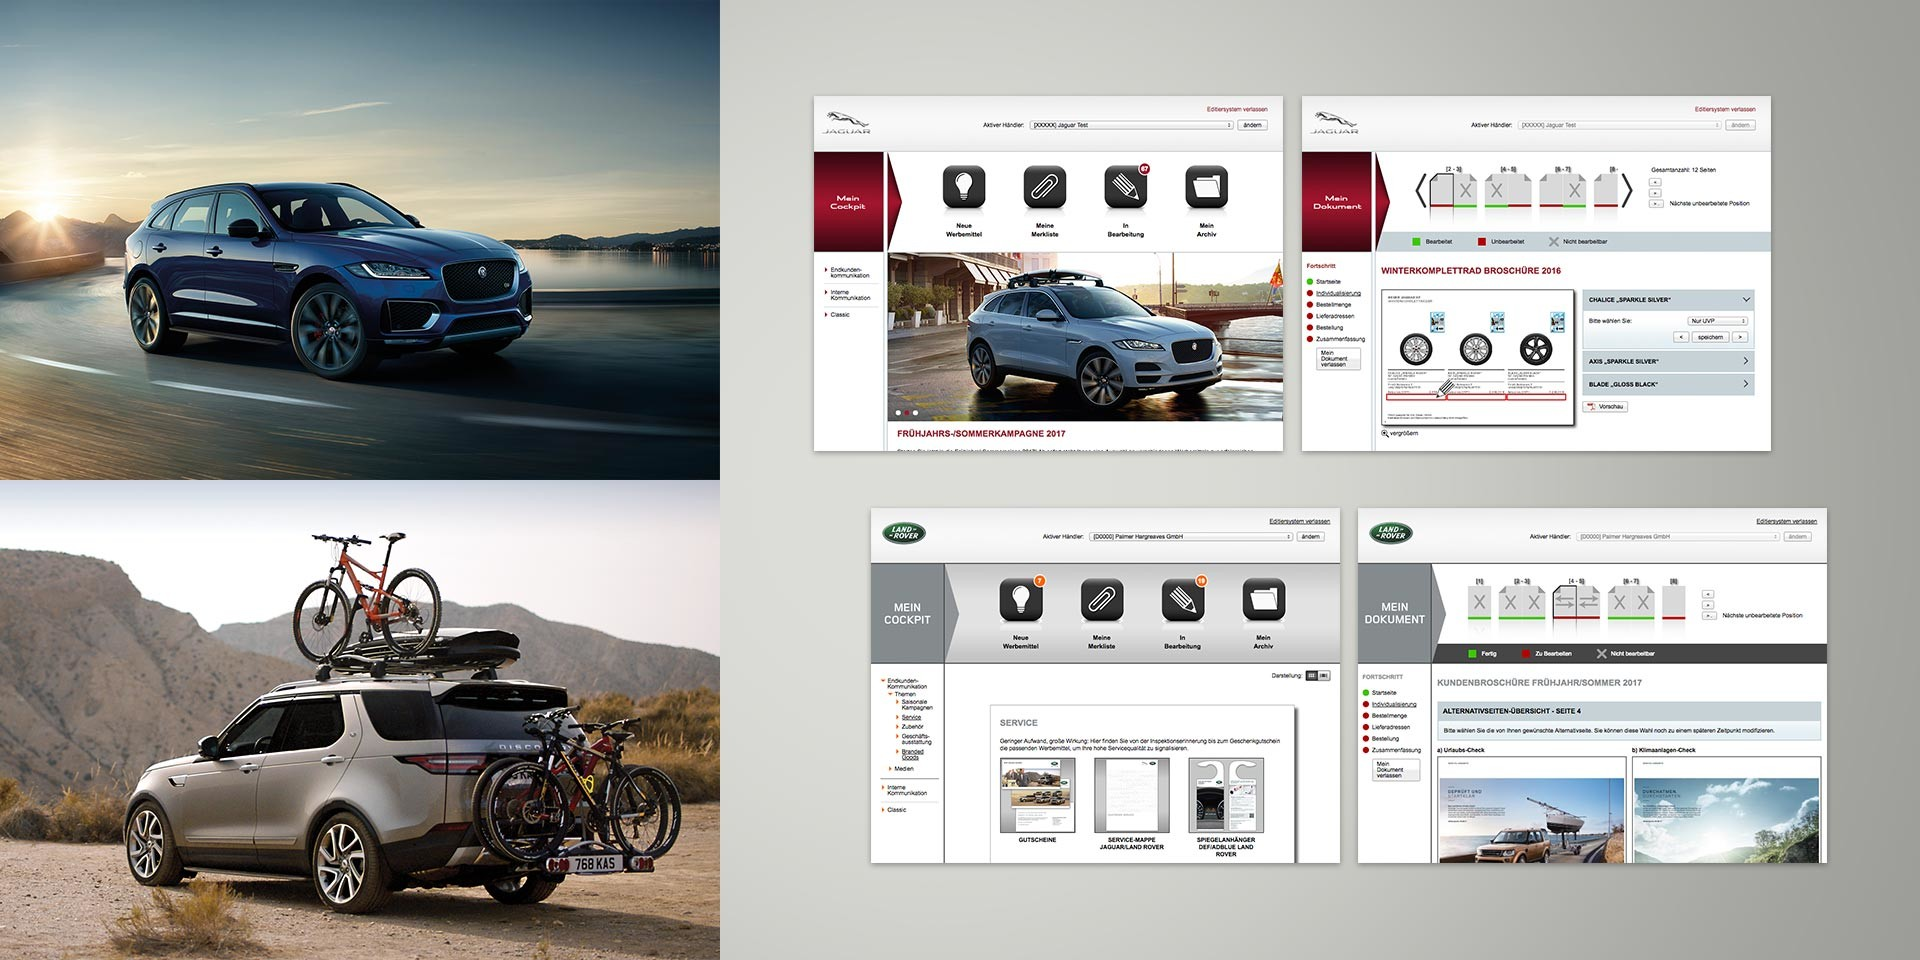 Jaguar Land Rover – Dealer platform – Editing system